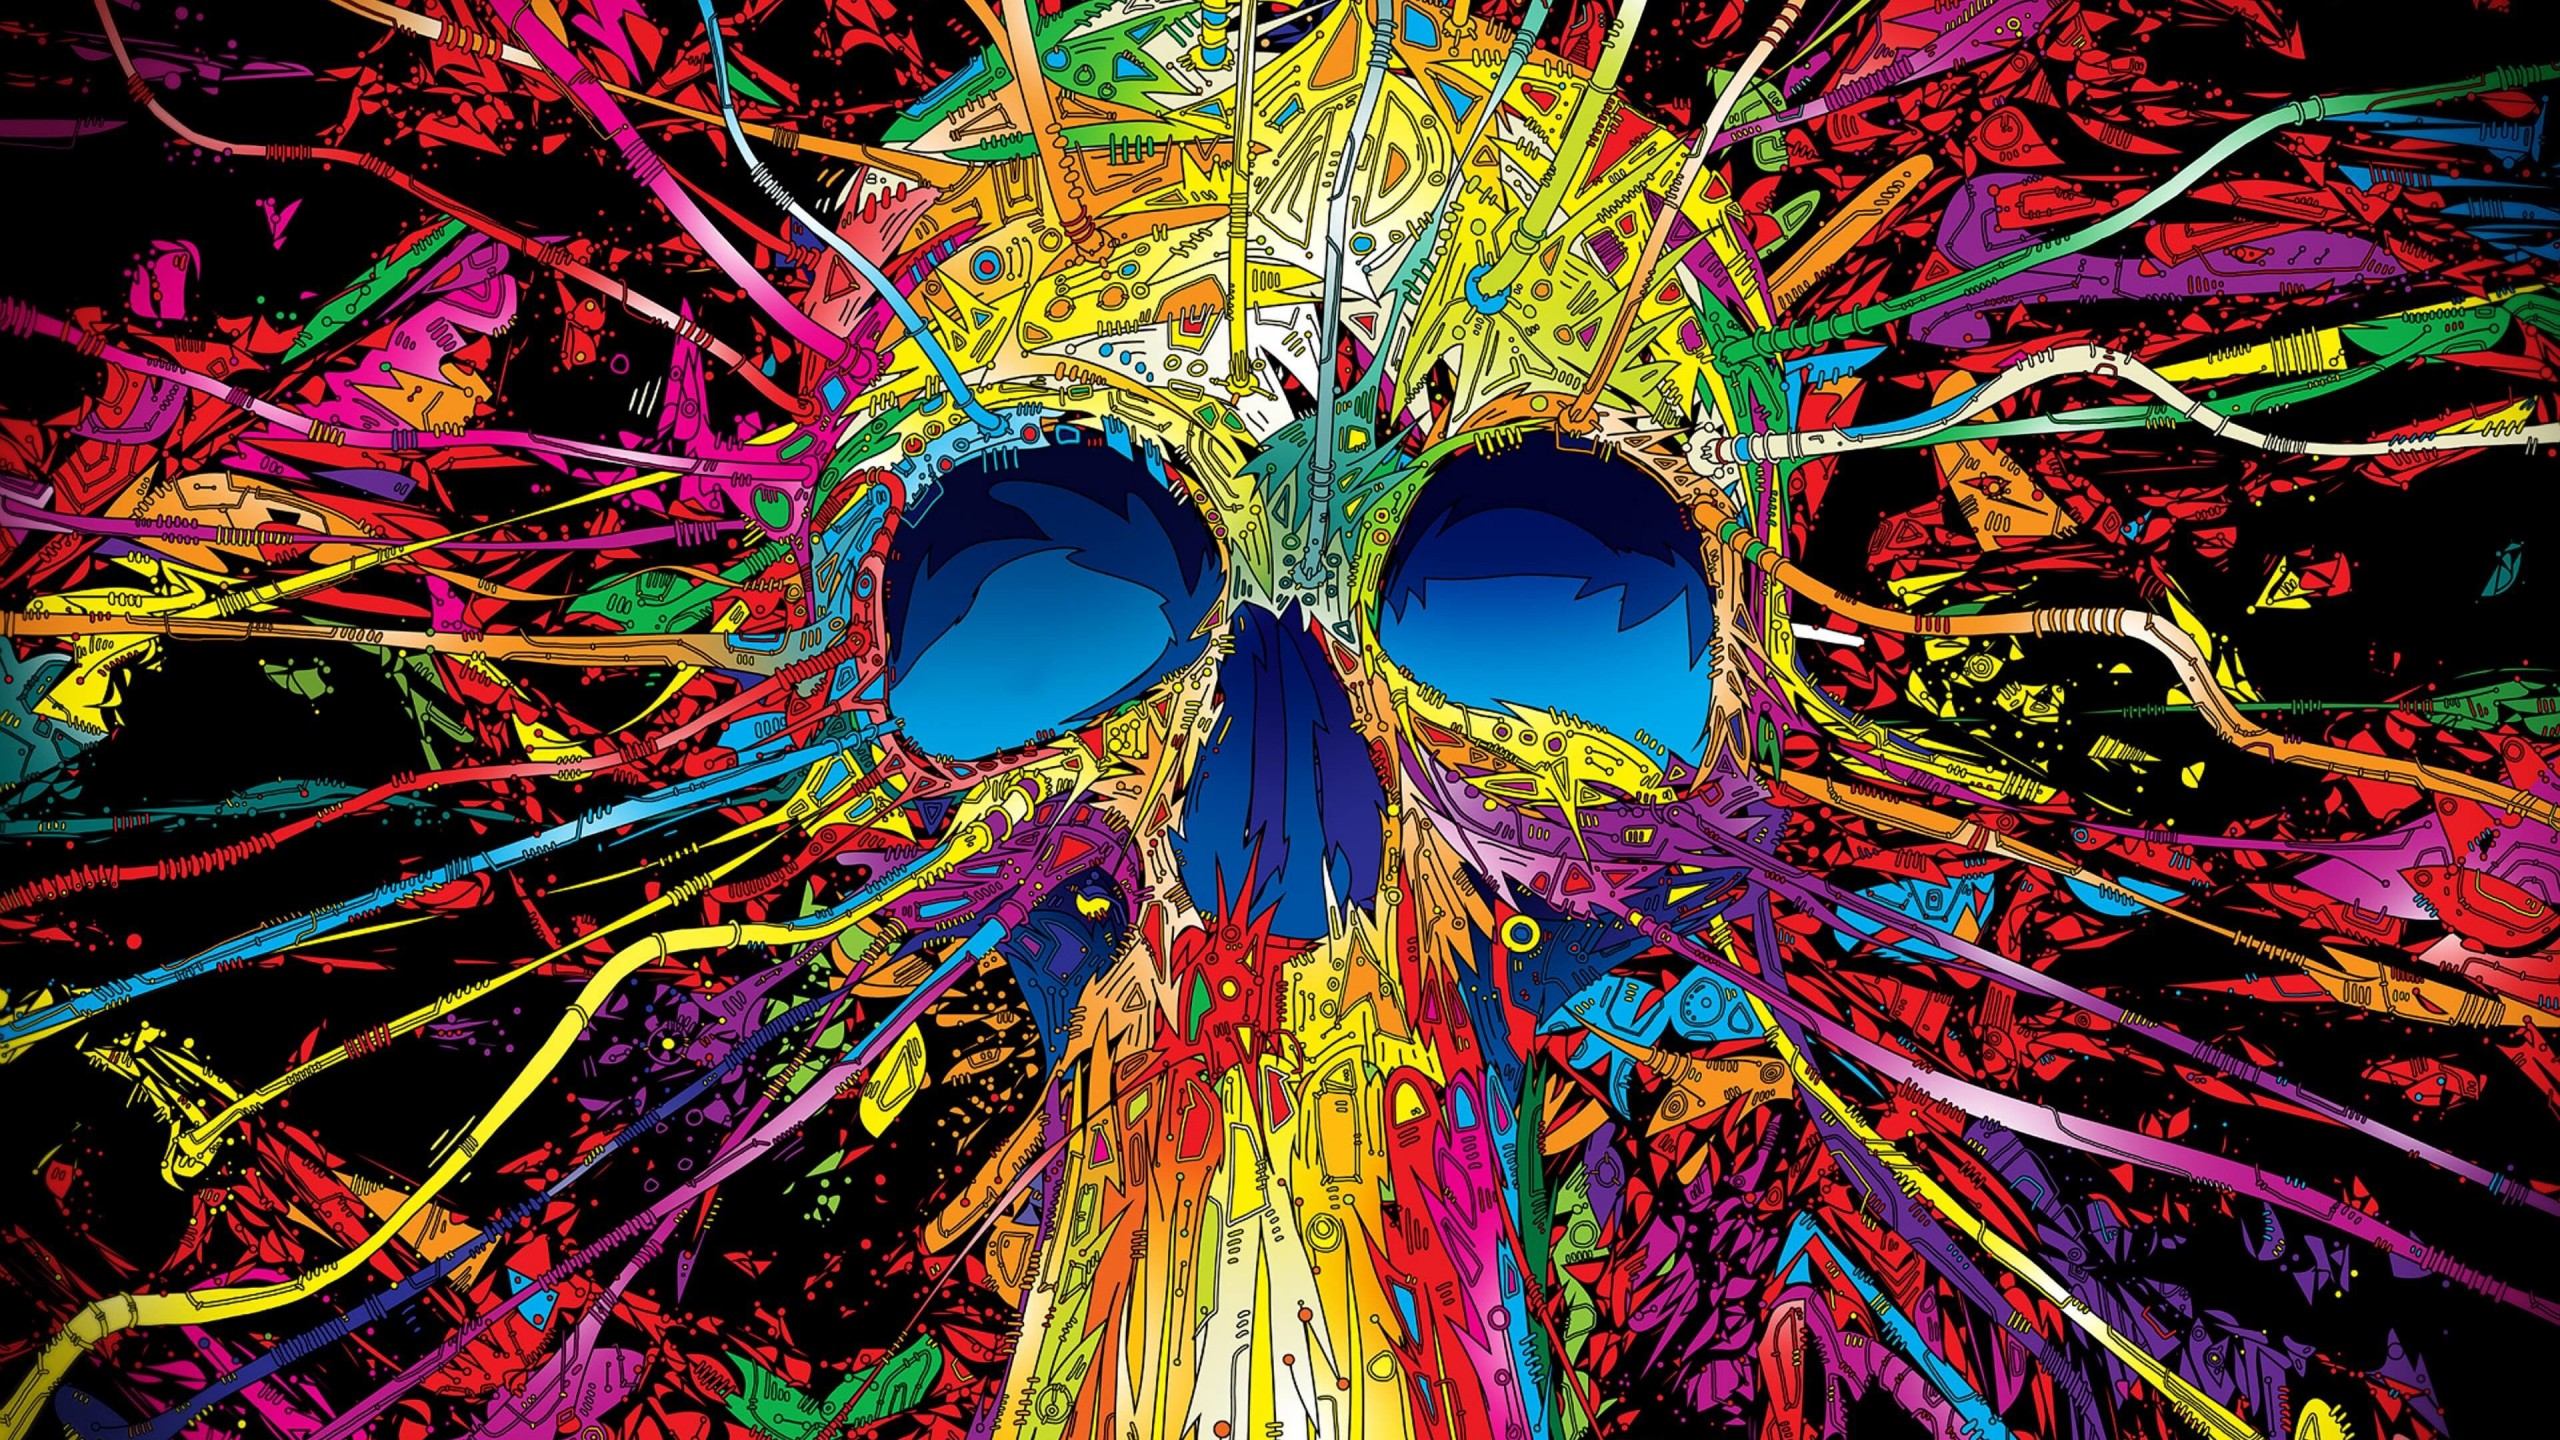 Psychedelic Skull Wallpaper for Desktop 2560x1440